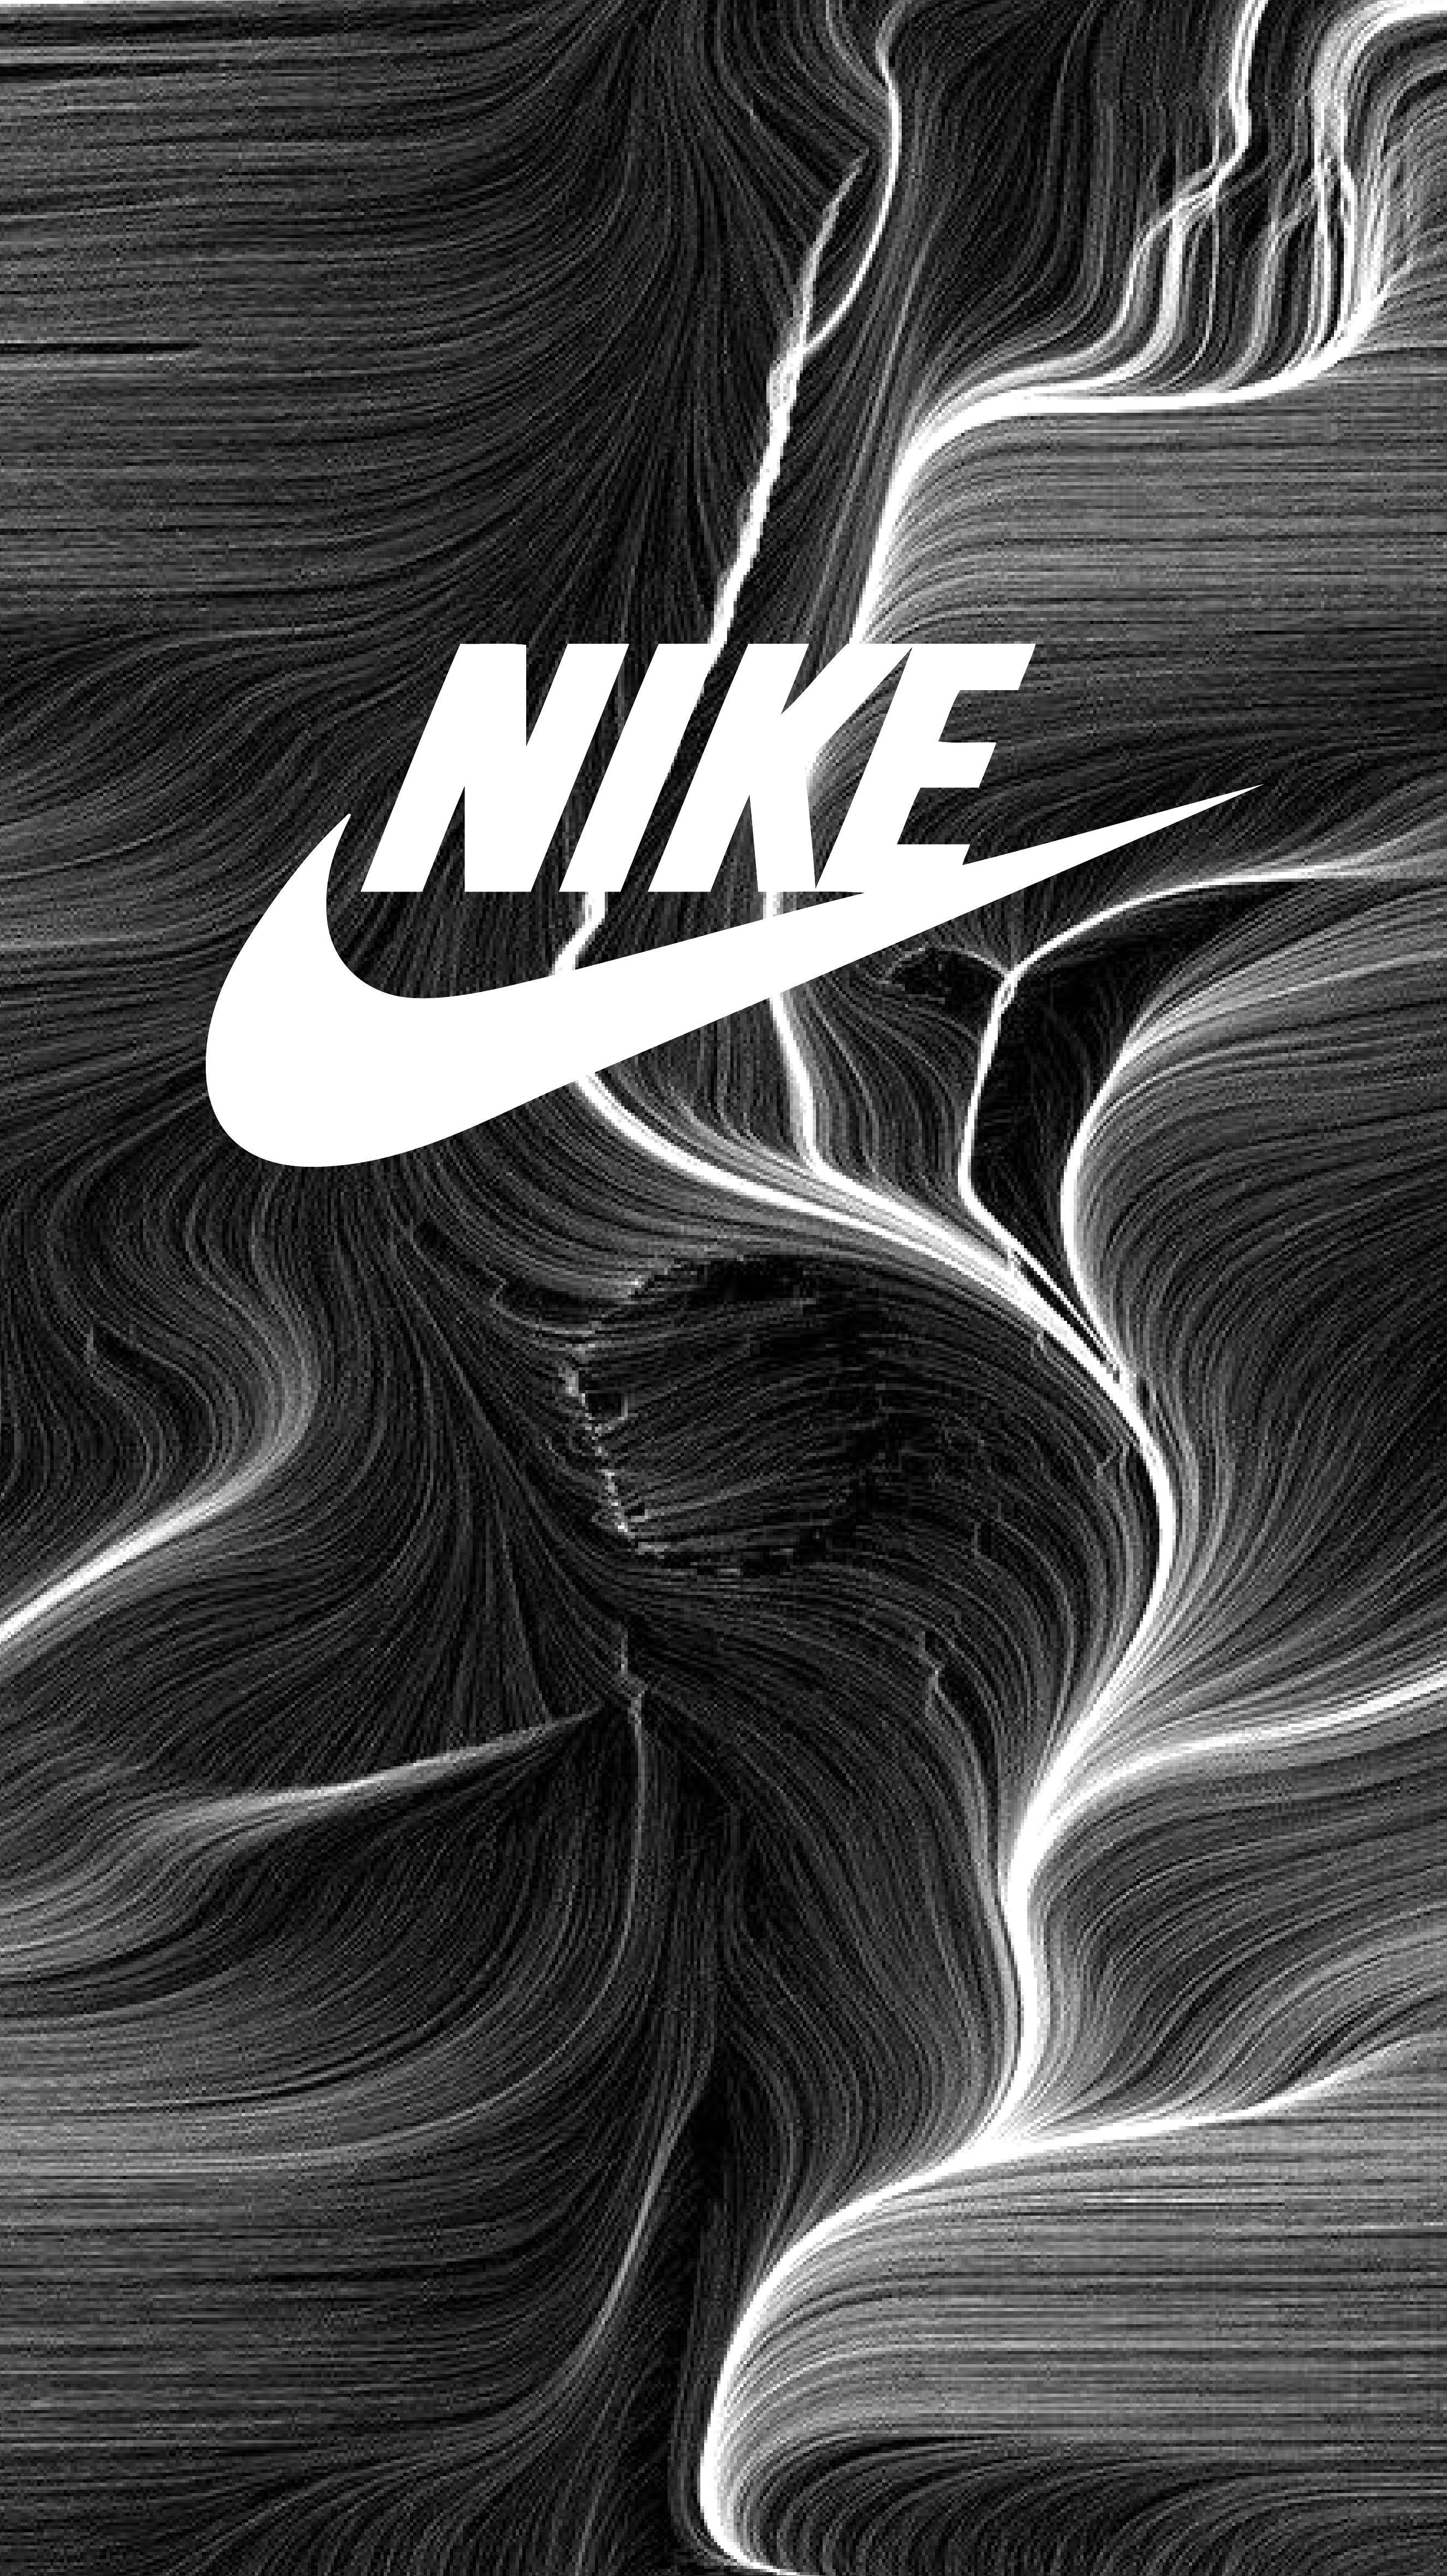 Fondos de Nike Black and White - Top gratis de Nike Black and White